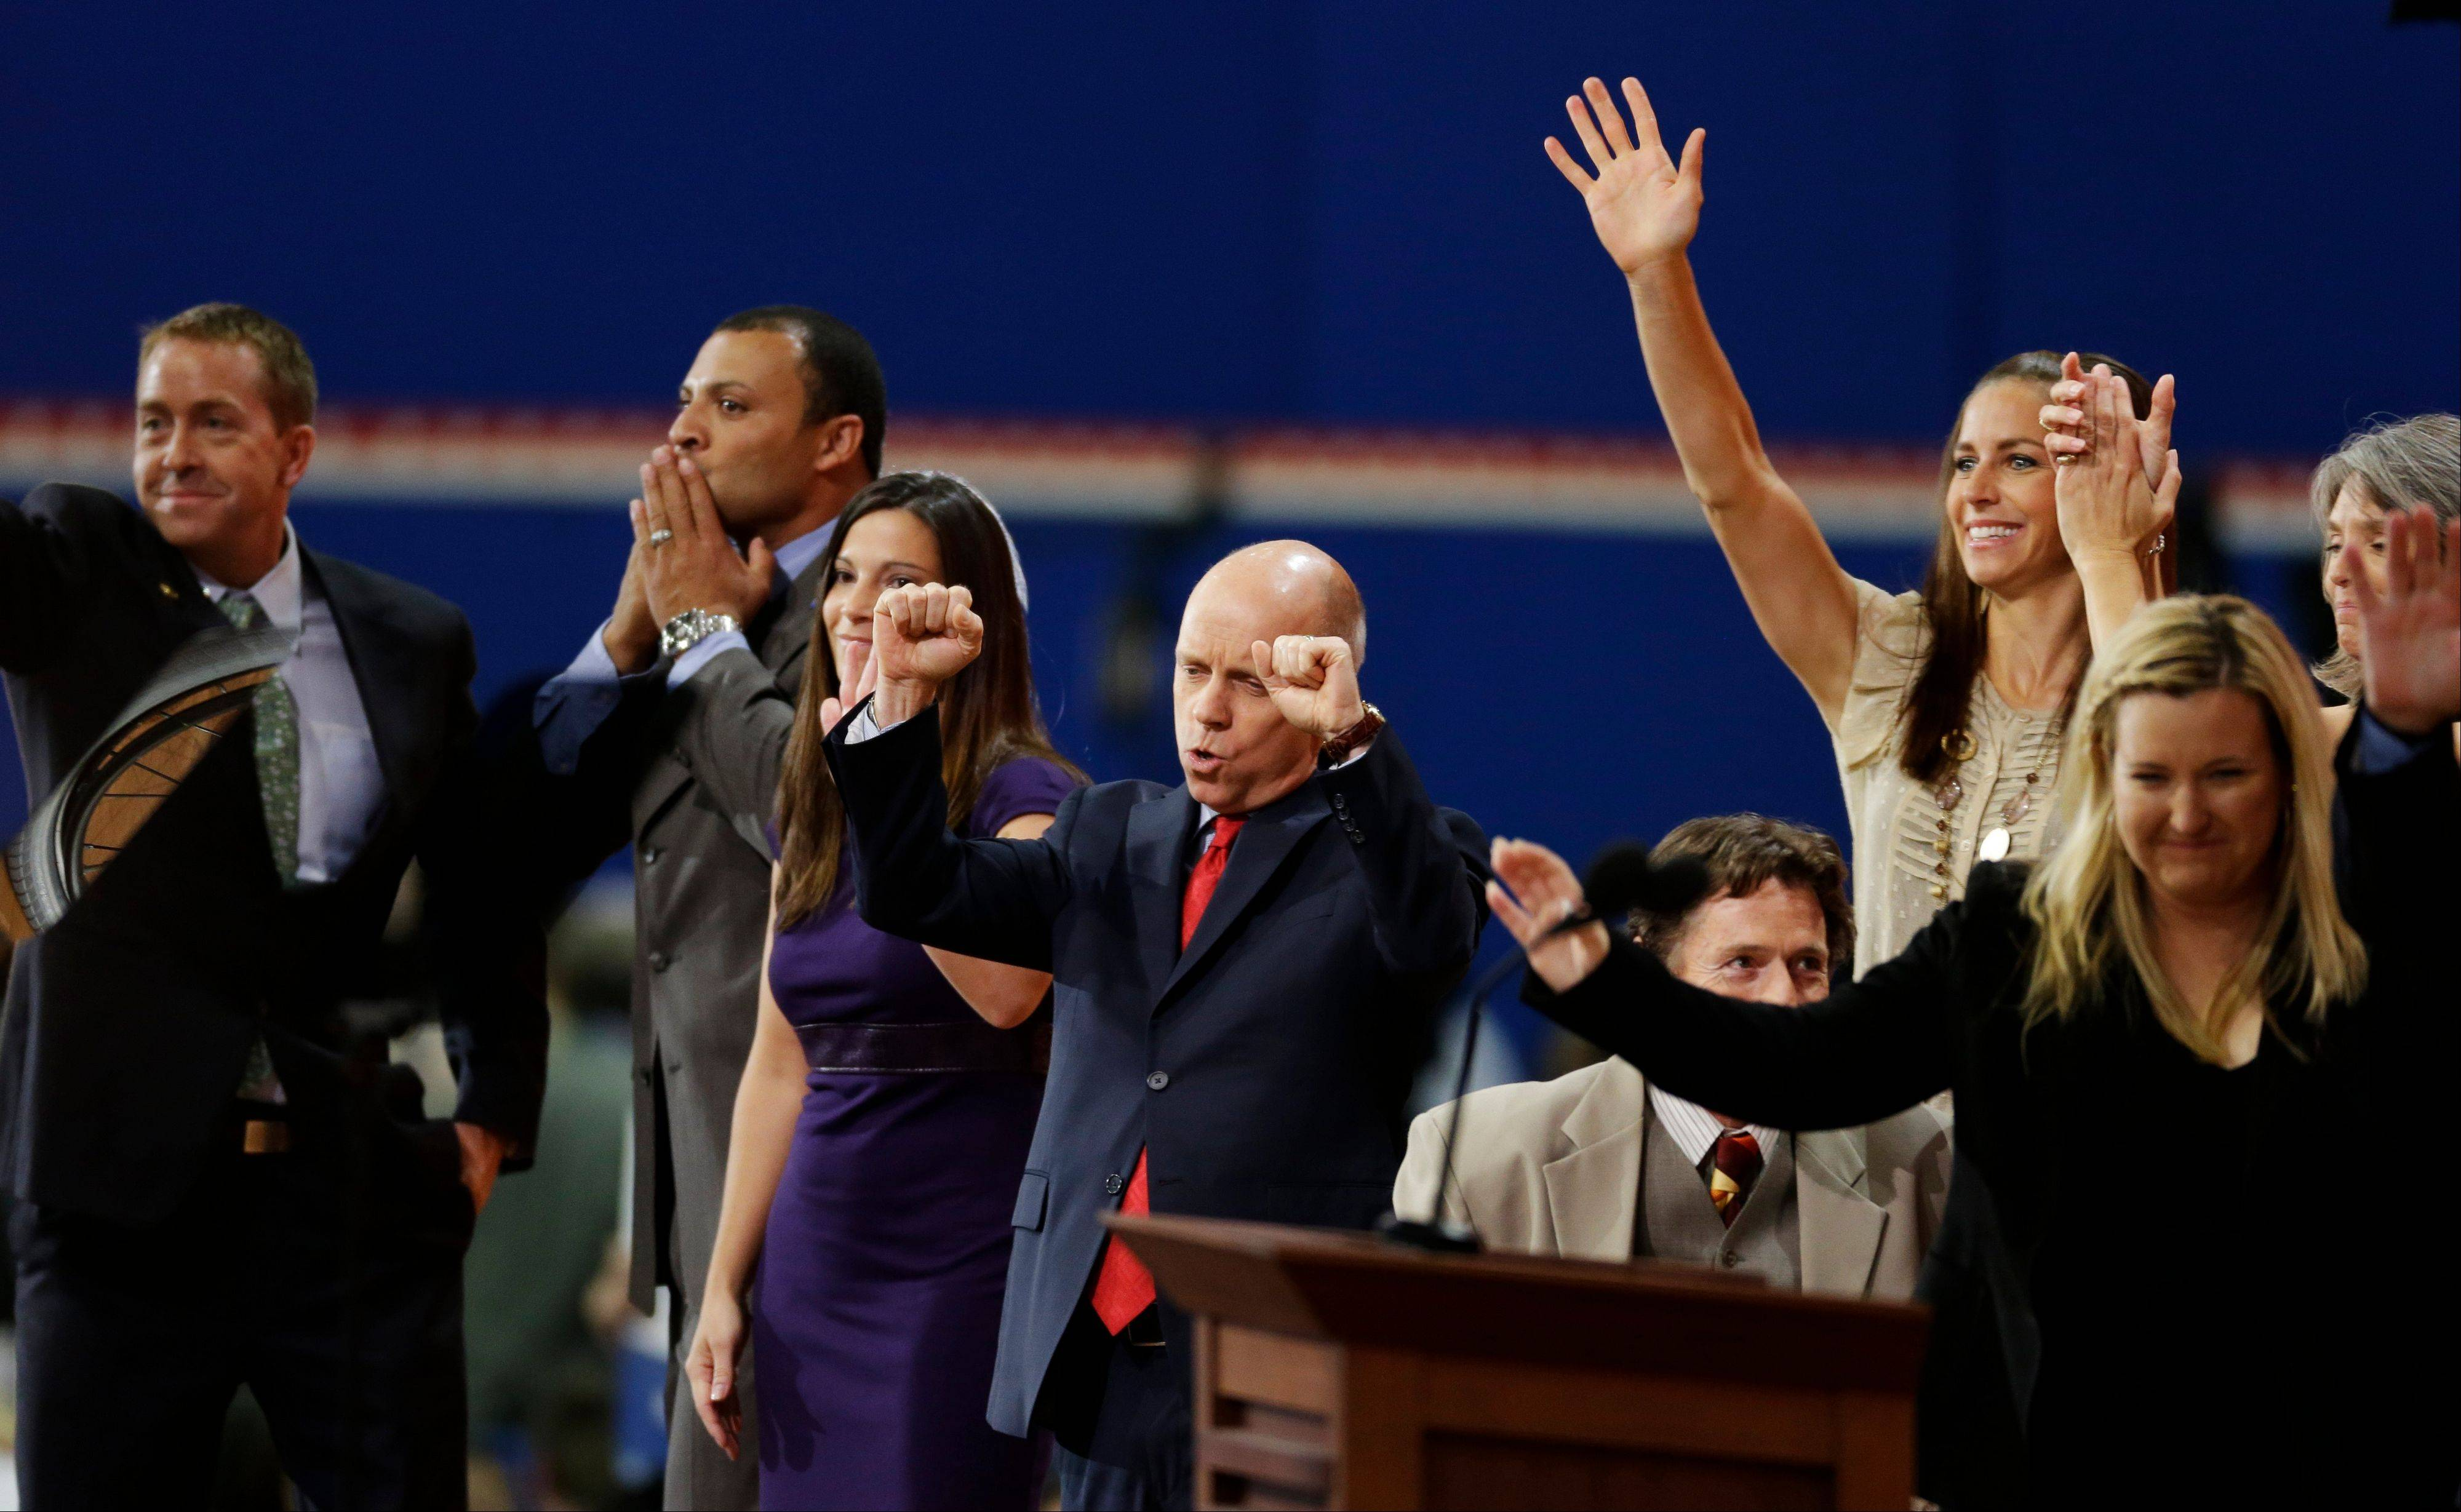 Figure skater Scott Hamilton and other Olympians cheer after gold medalist Kim Rhode's, right, speech to delegates during the Republican National Convention in Tampa, Fla., on Thursday, Aug. 30, 2012.